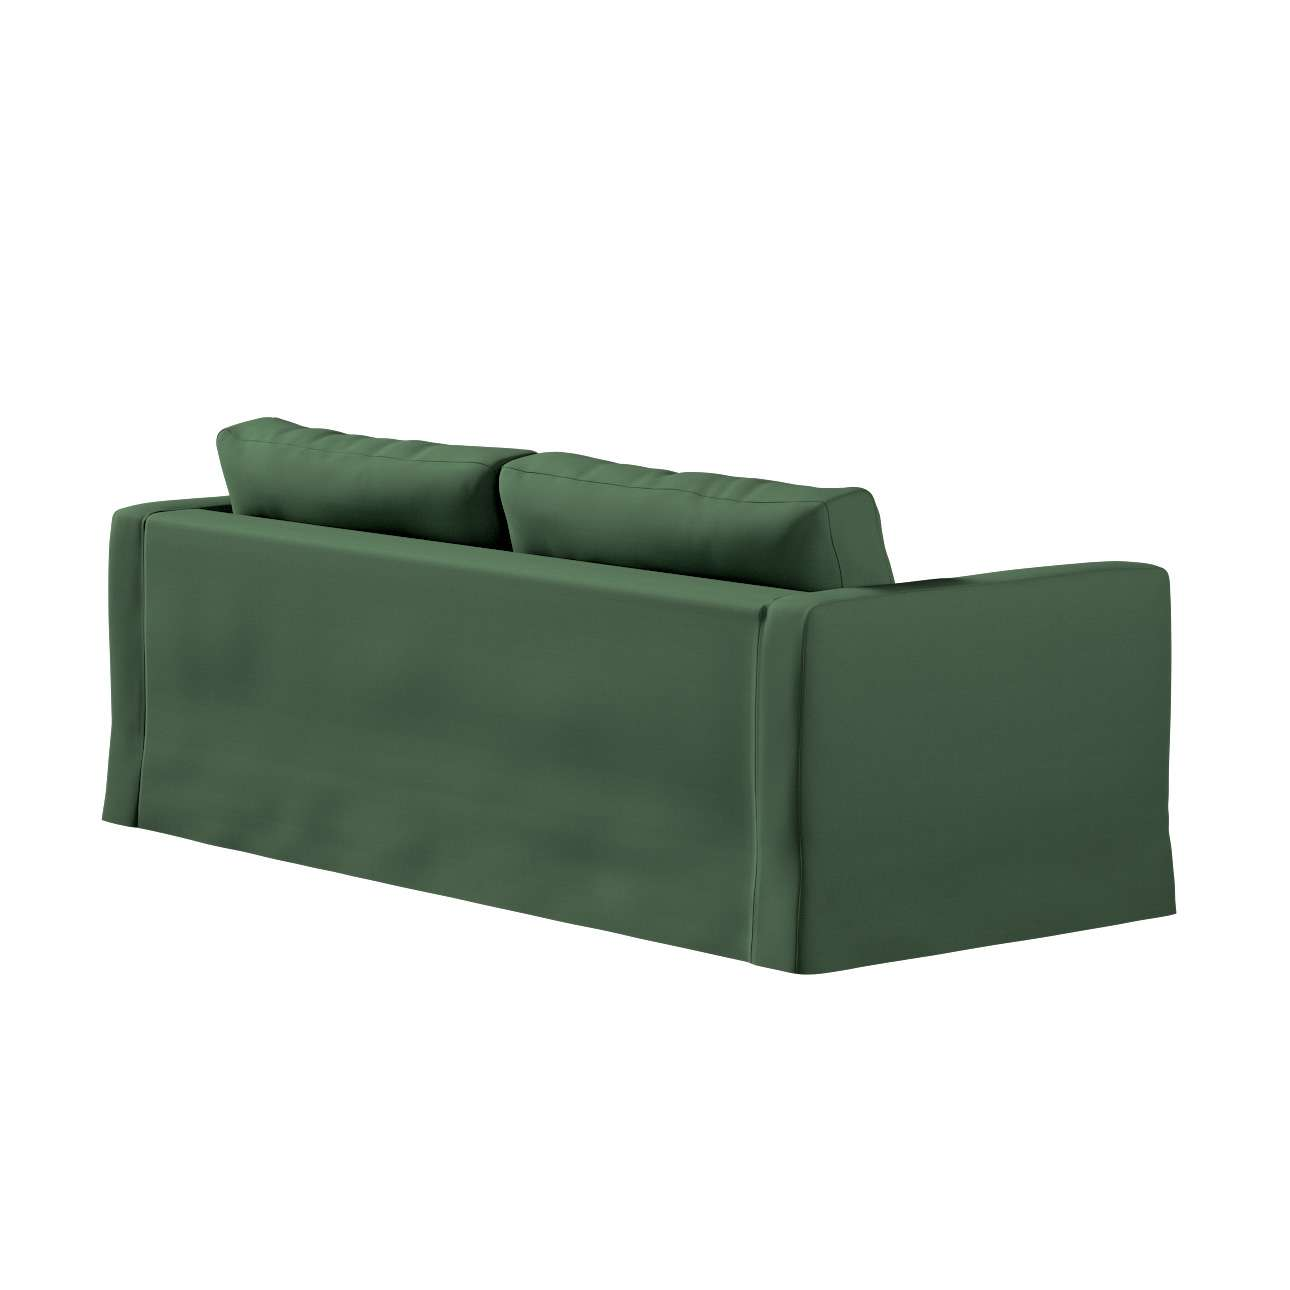 Floor length Karlstad 3-seater sofa cover in collection Panama Cotton, fabric: 702-06